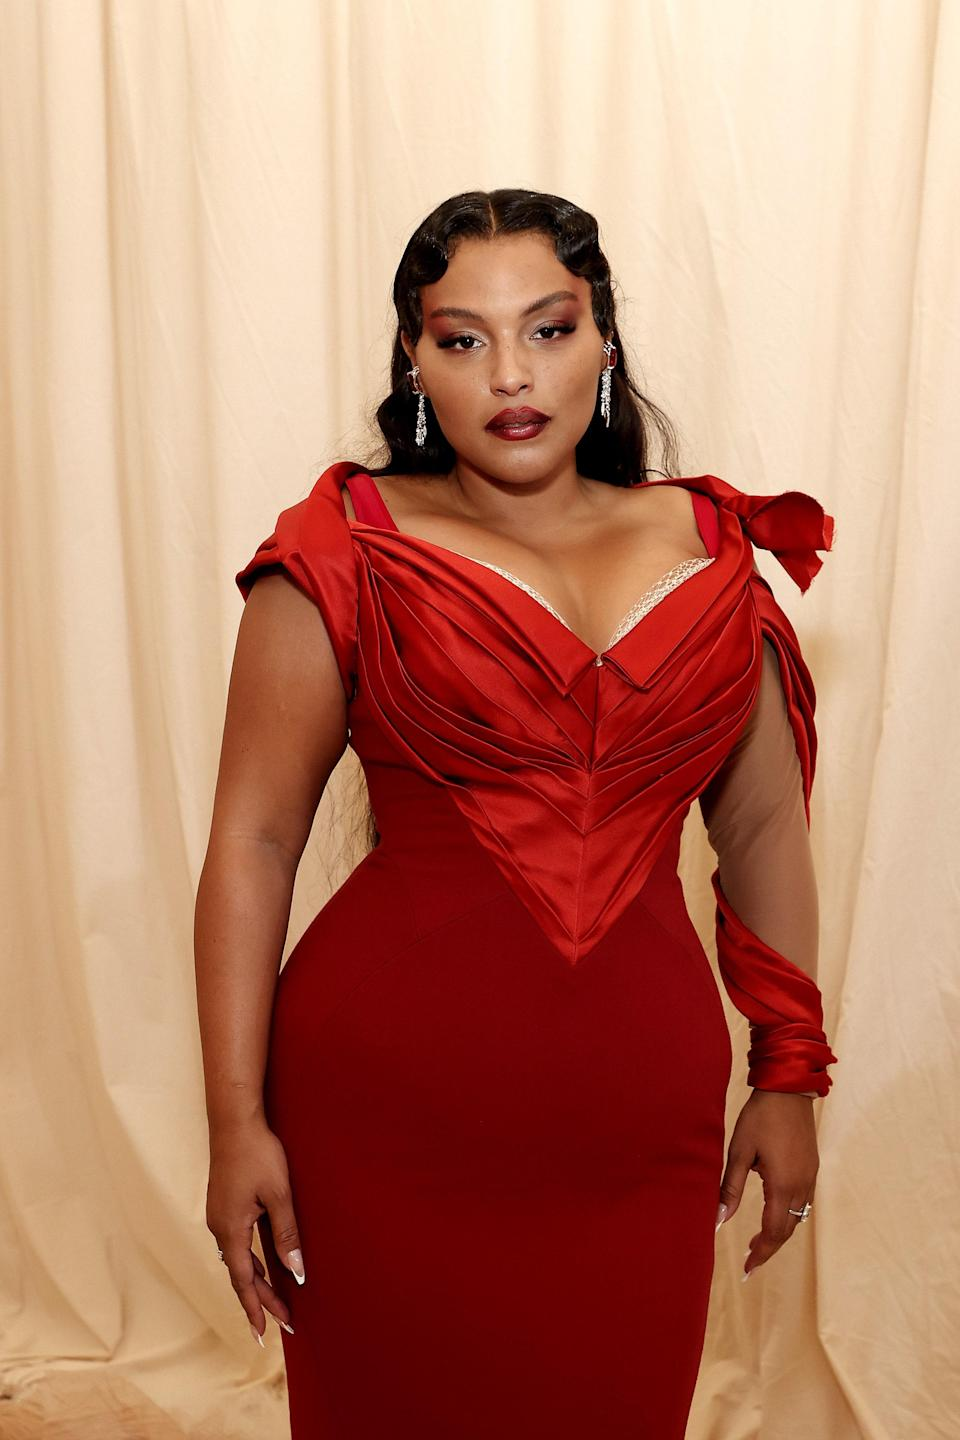 NEW YORK, NEW YORK - SEPTEMBER 13: Paloma Elsesser attends The 2021 Met Gala Celebrating In America: A Lexicon Of Fashion at Metropolitan Museum of Art on September 13, 2021 in New York City. (Photo by Arturo Holmes/MG21/Getty Images)